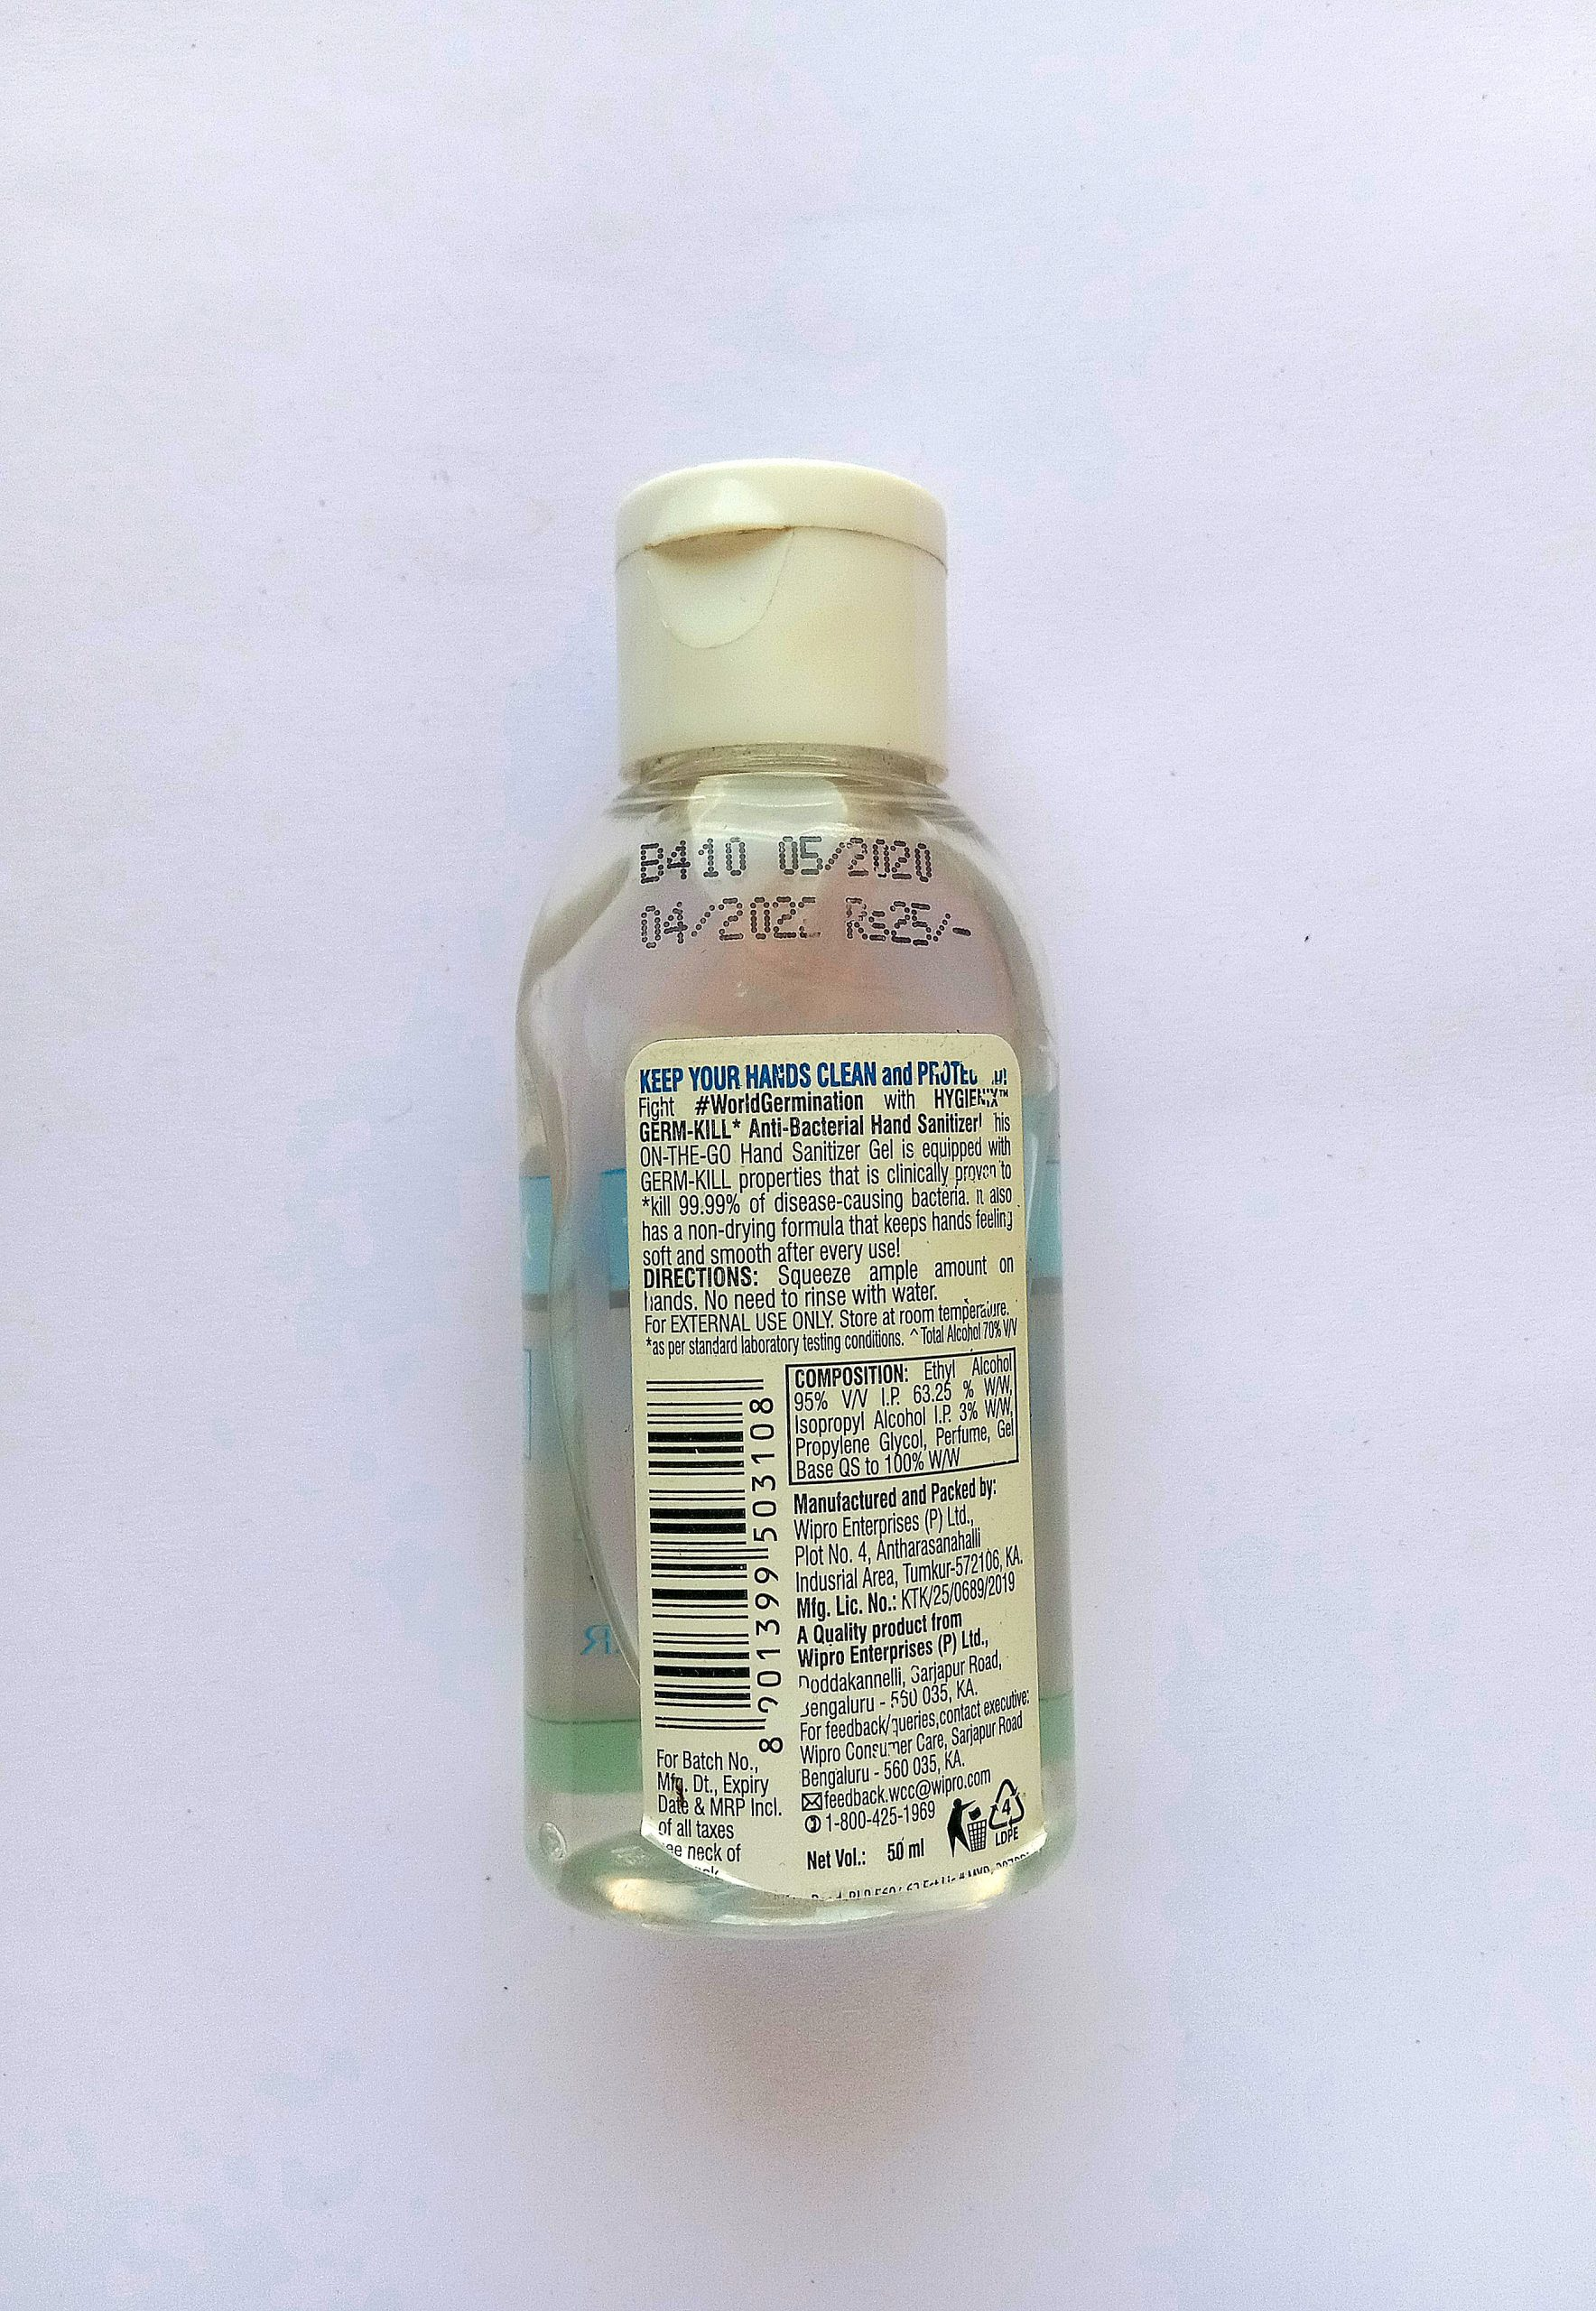 A hand sanitizer product